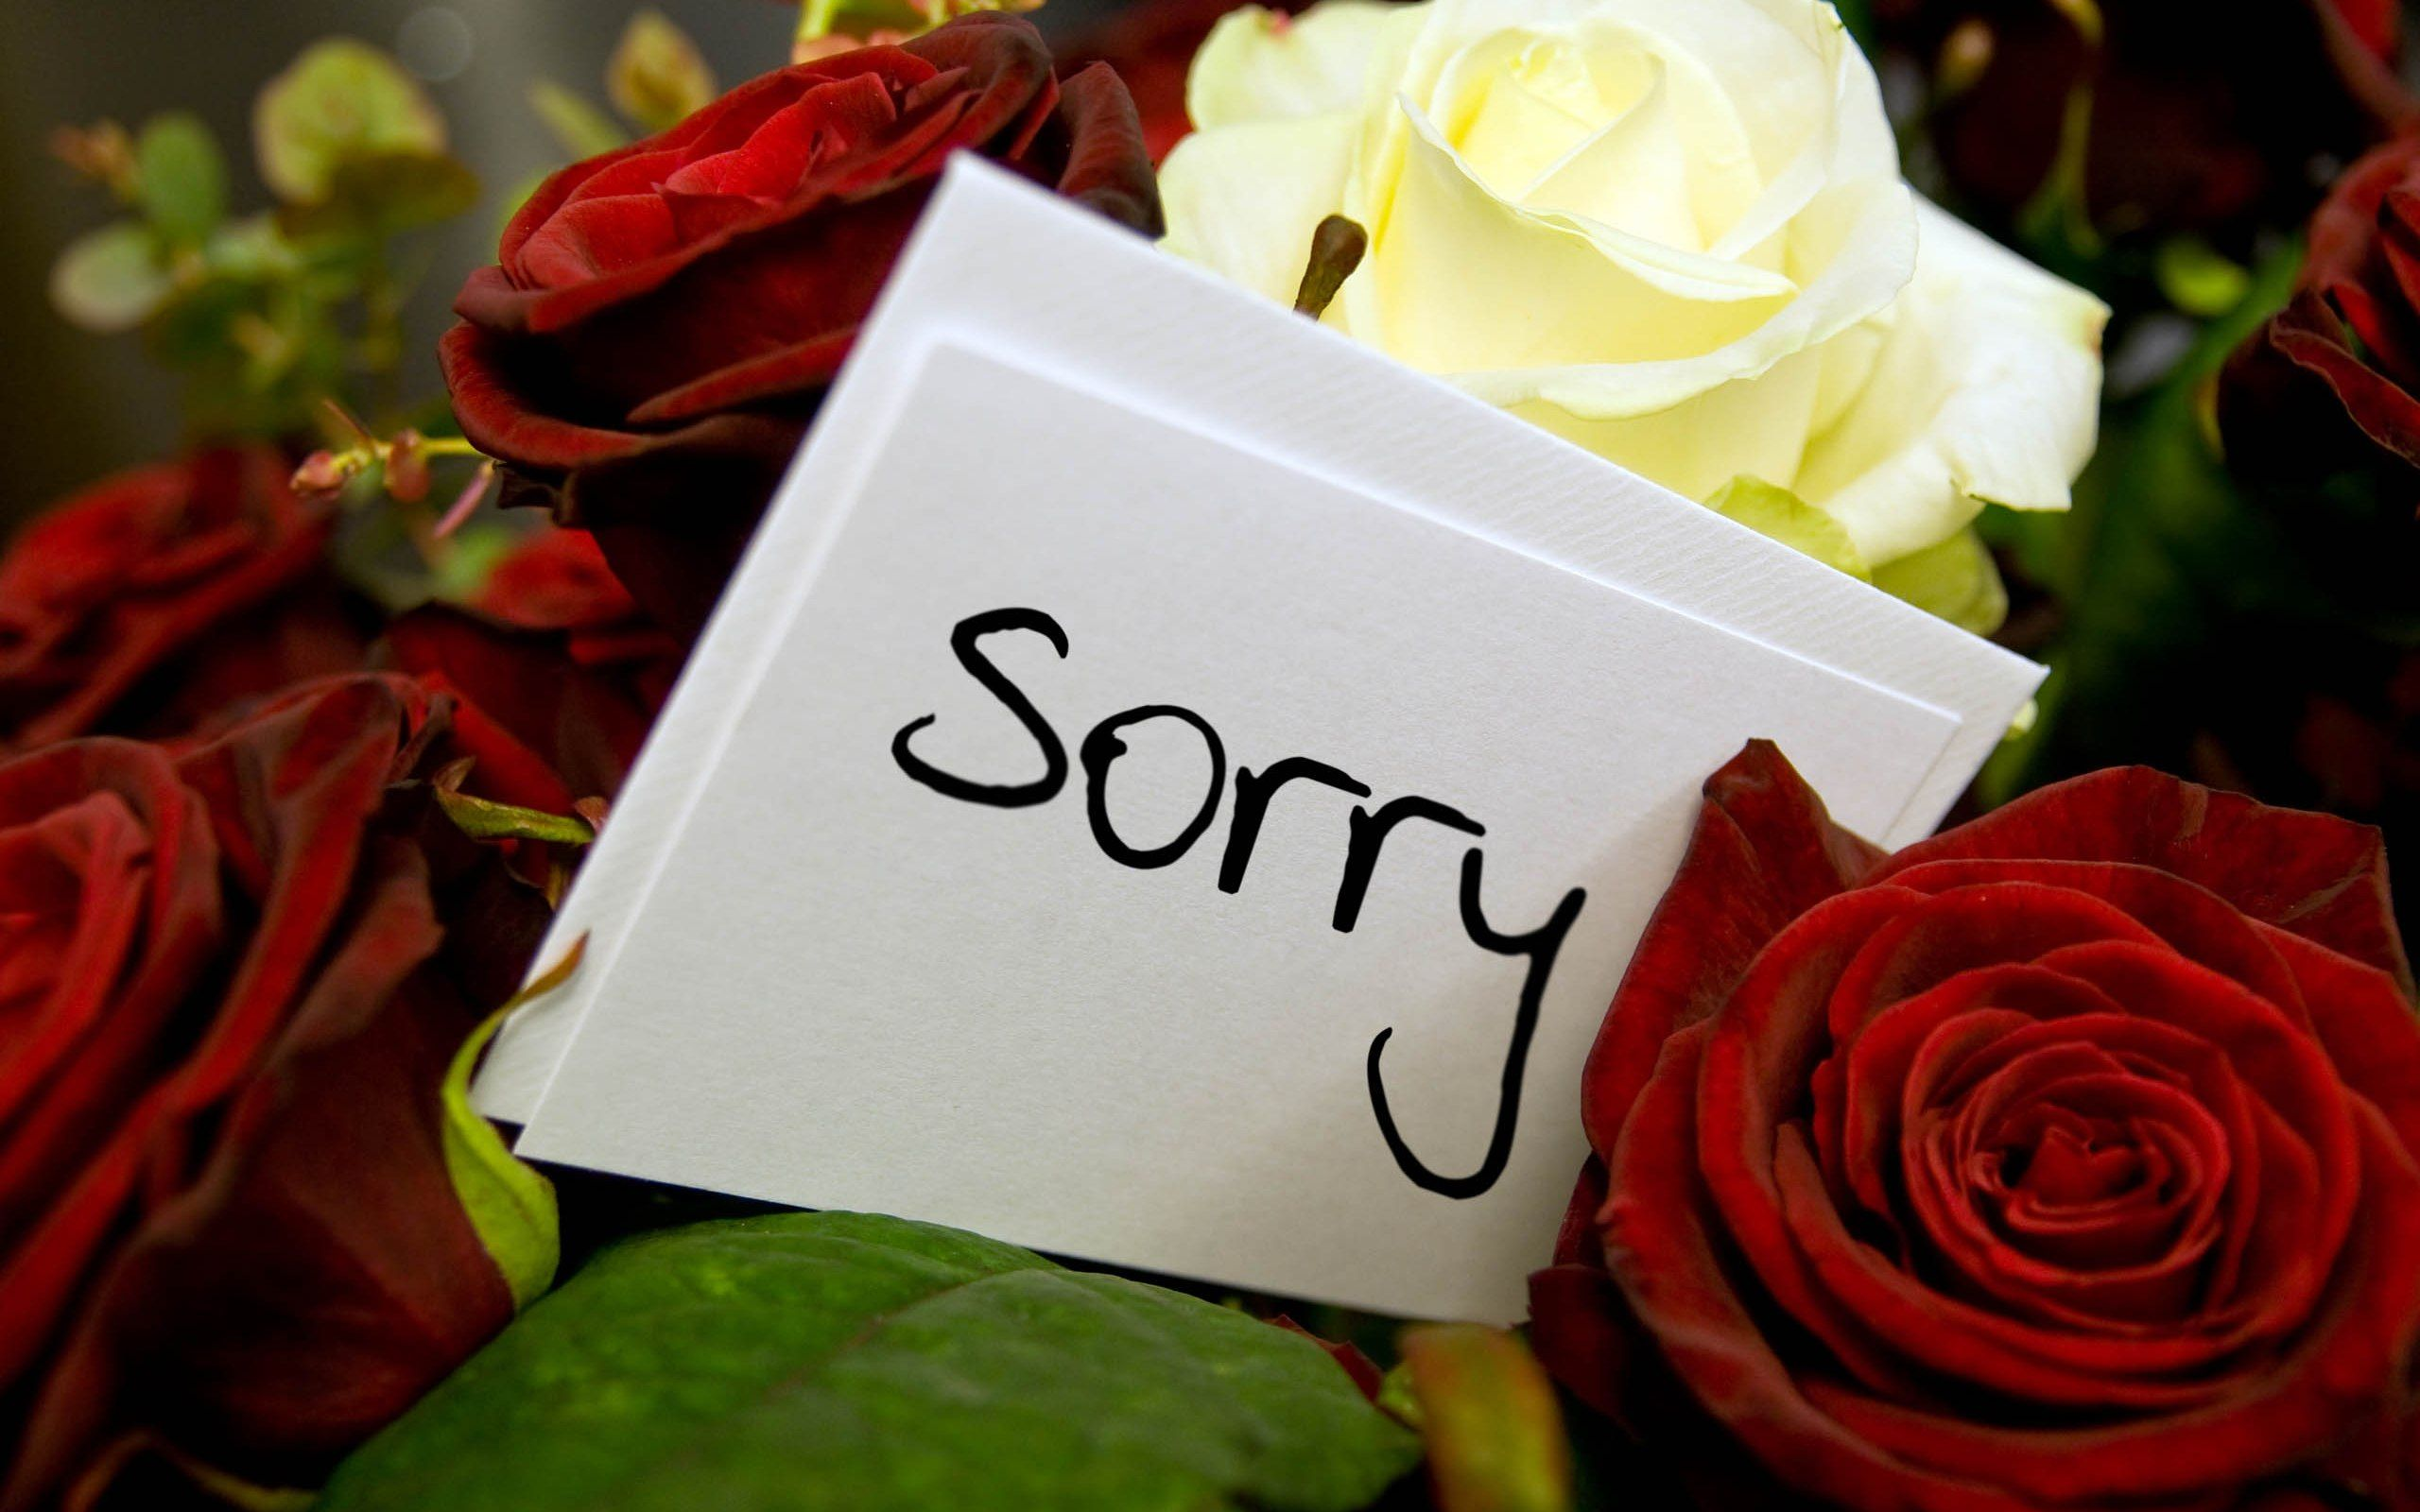 Sorry Hd Pics wallpaper hd